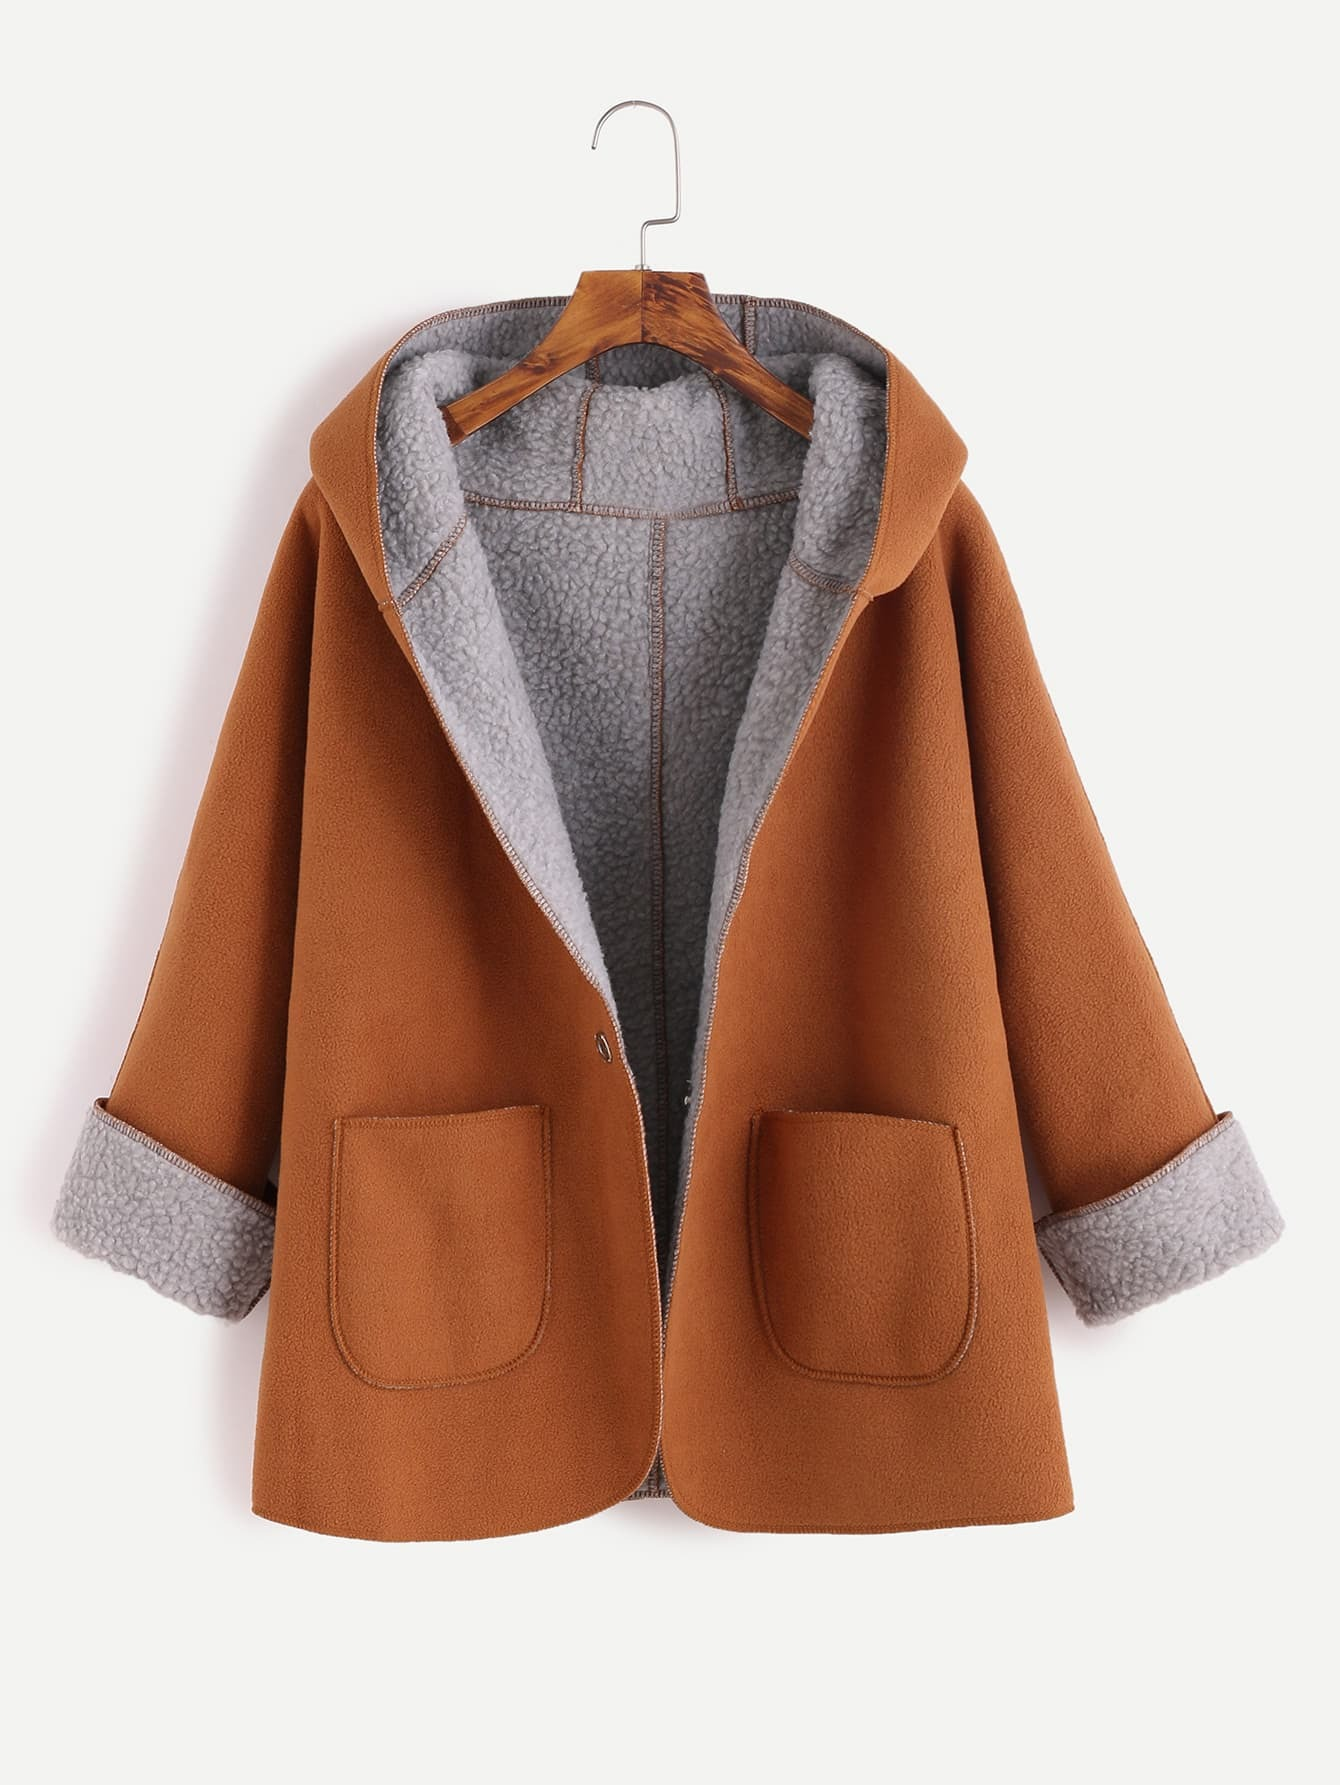 Women's Coats - Winter, Trench & Faux Fur Coats | Romwe.com